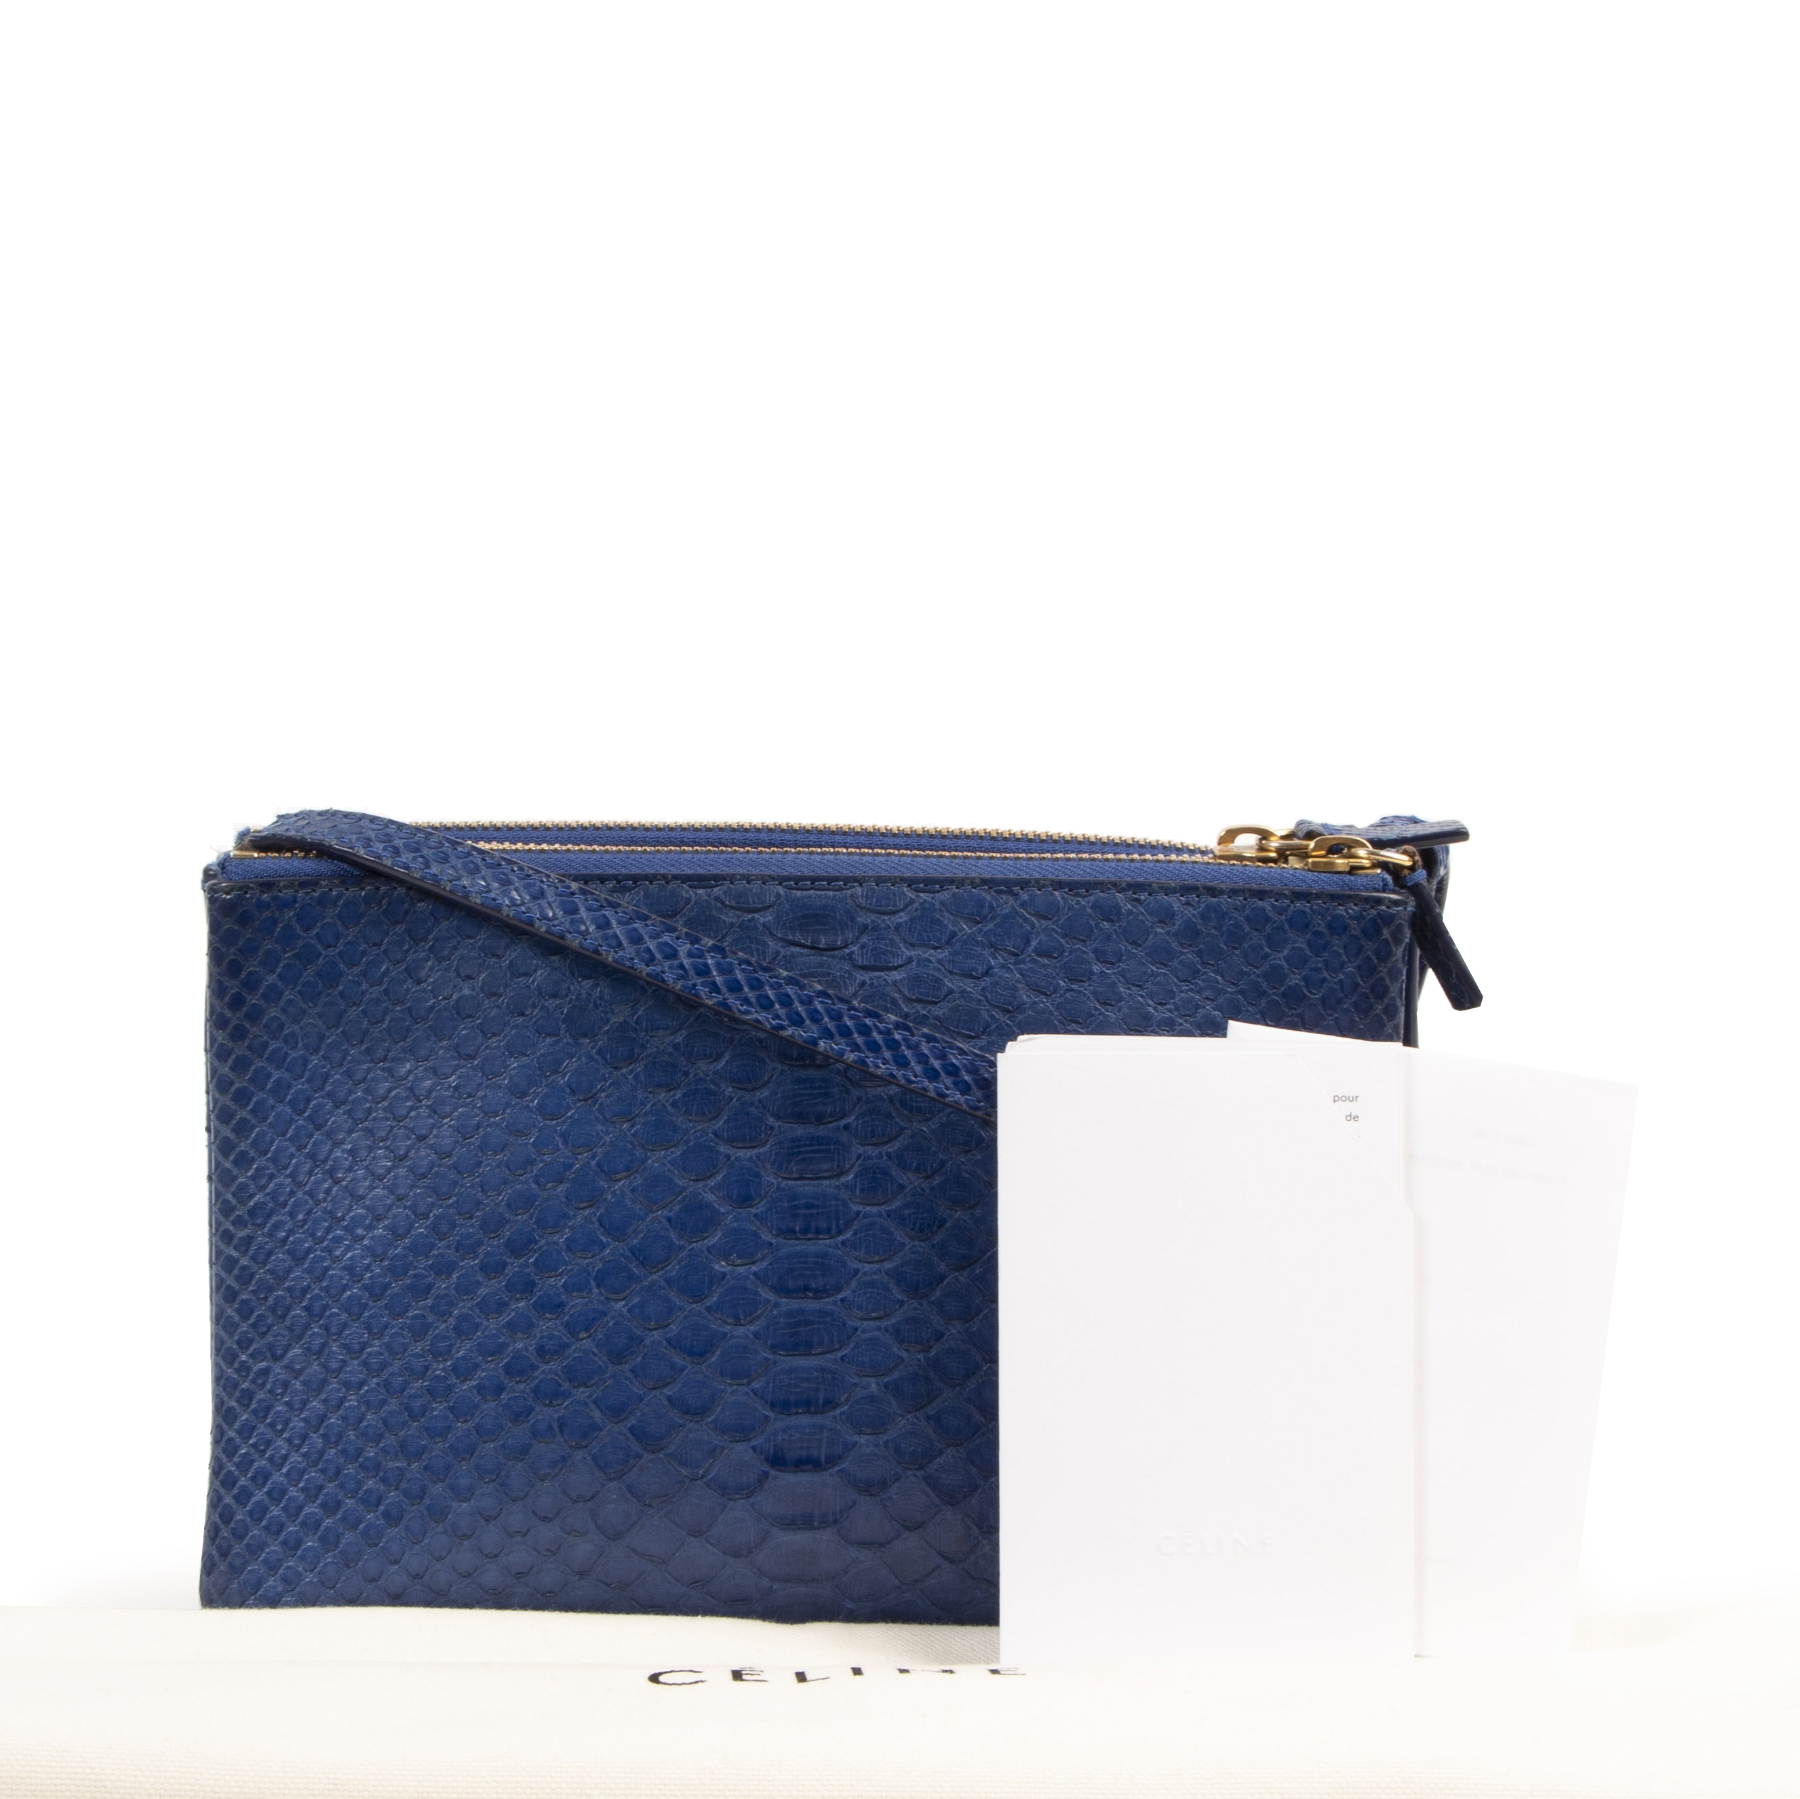 Authentieke tweedehands vintage Céline Trio Python Crossbody Bag koop online webshop LabelLOV